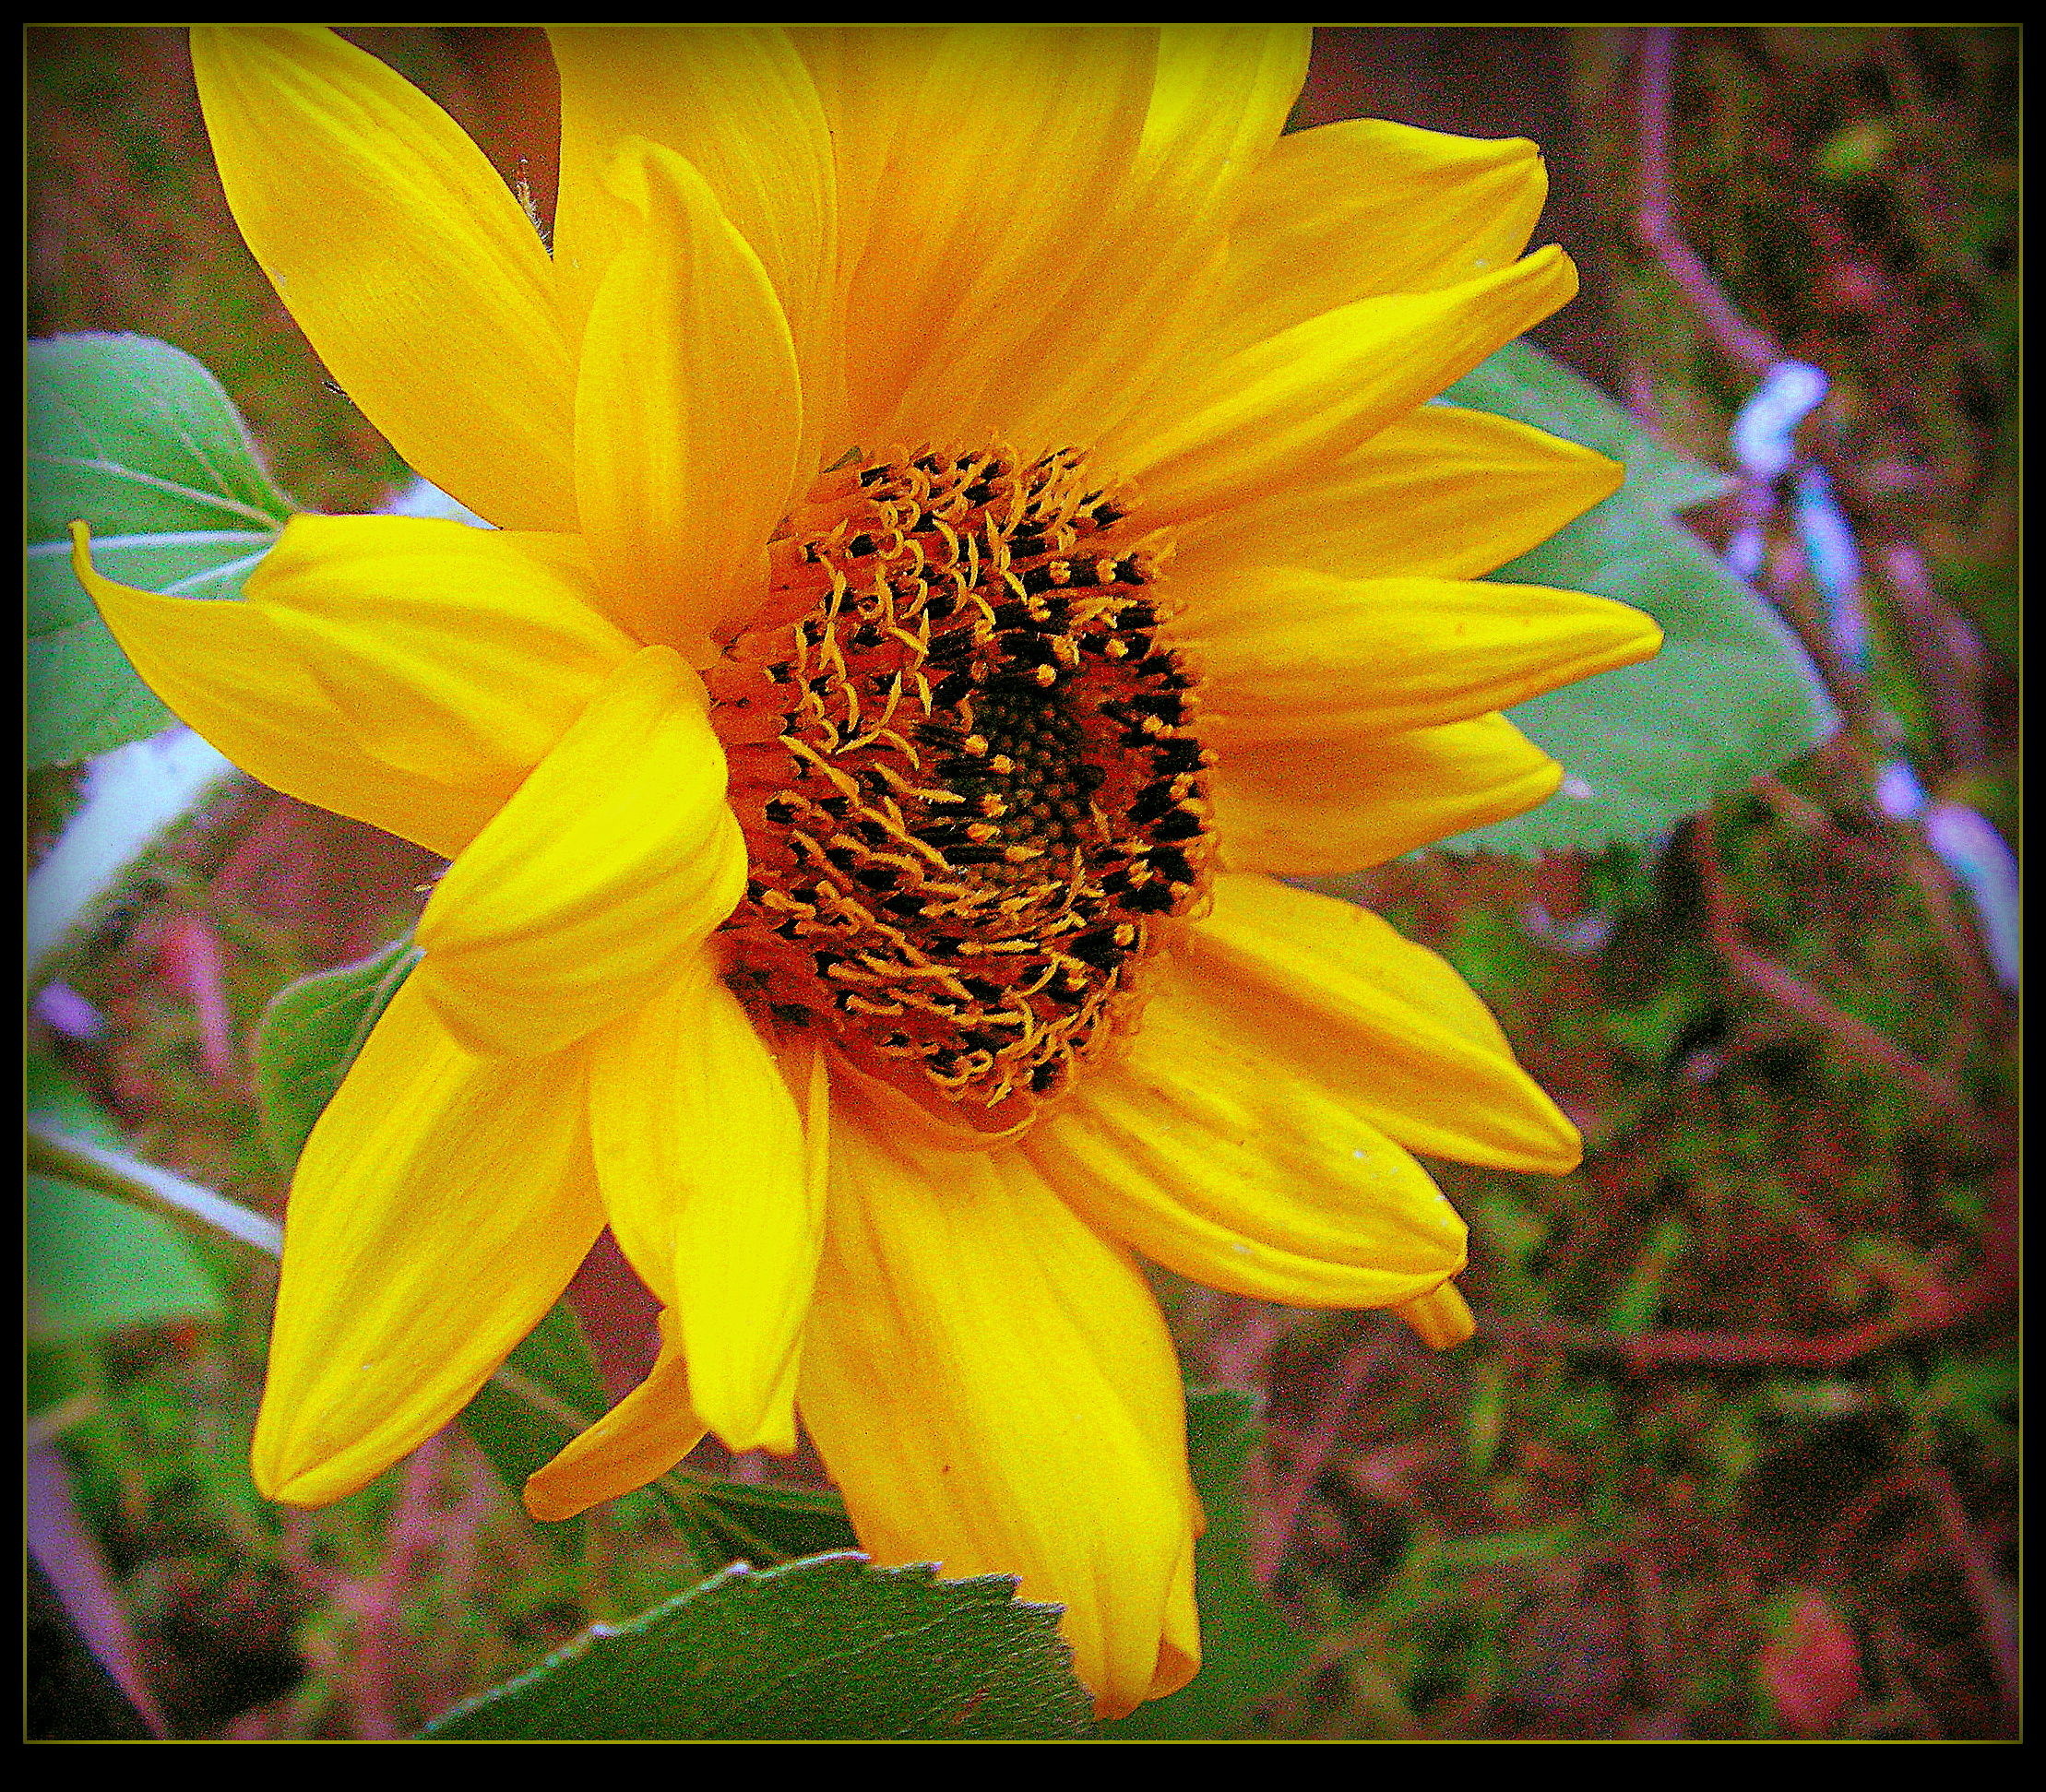 Sunflower Near The Woods by surrealistic-gloom